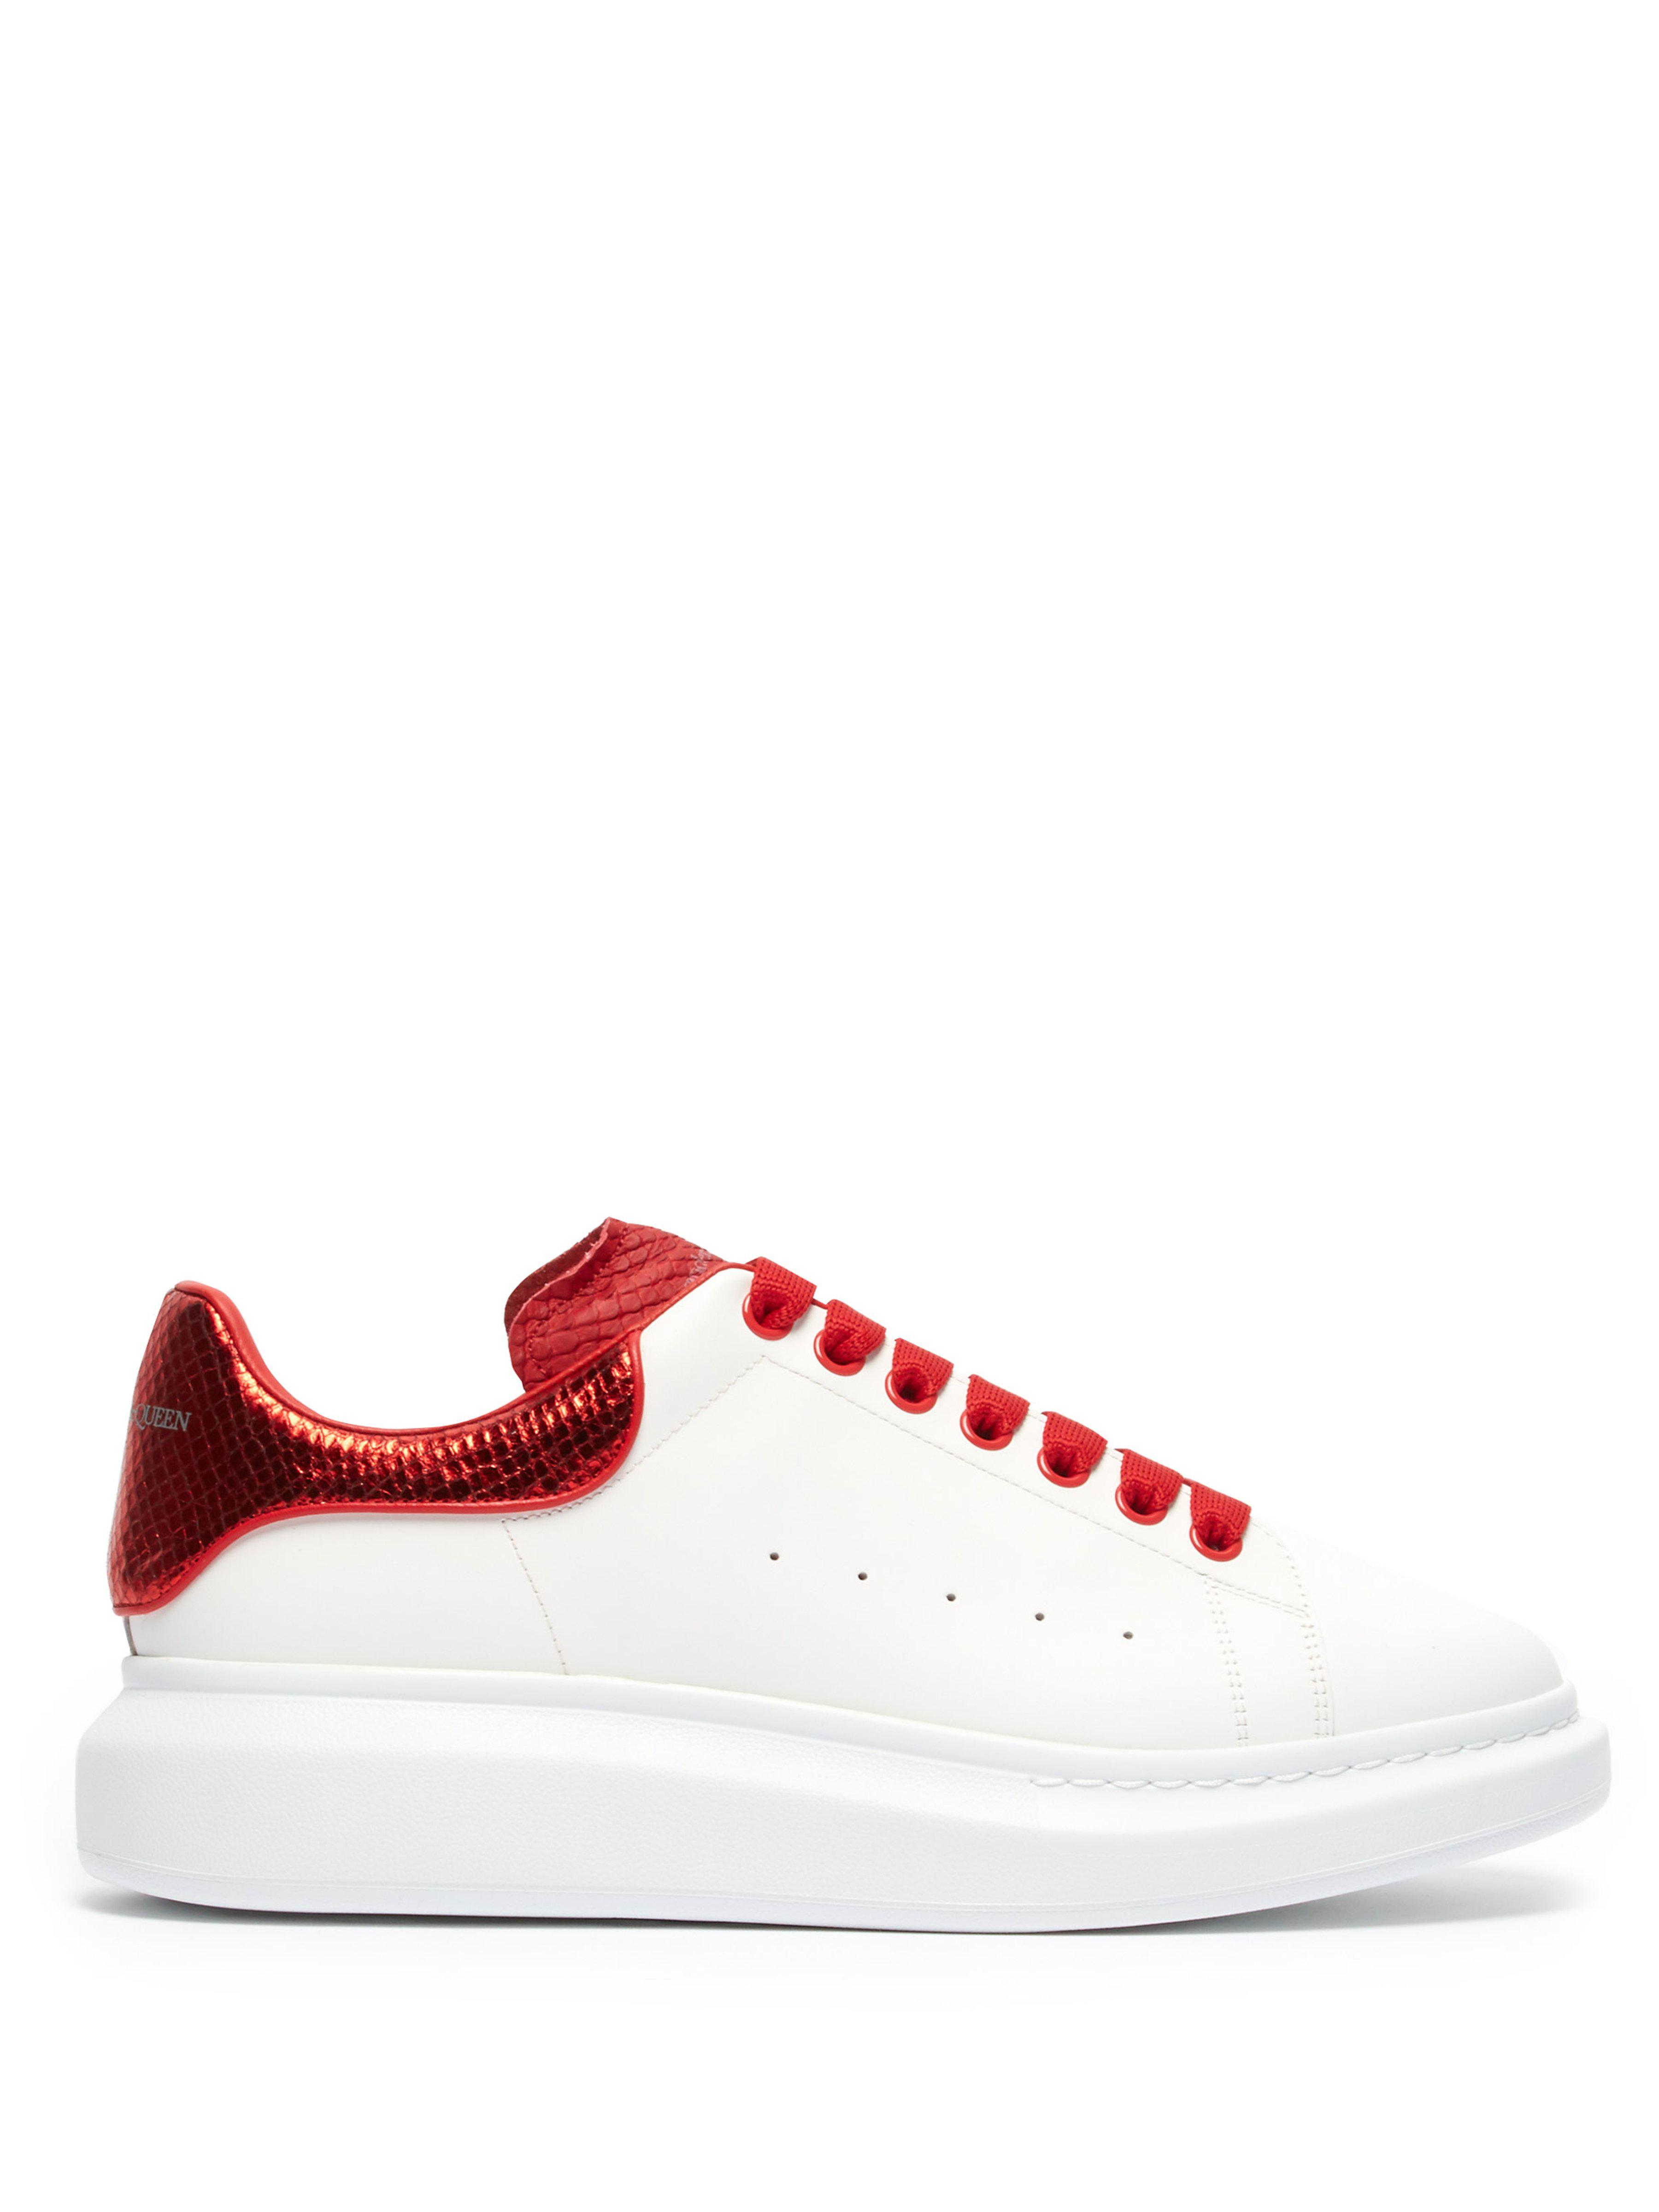 d3b9cd352f58 Alexander McQueen - Red Raised Sole Low Top Leather Trainers for Men -  Lyst. View fullscreen